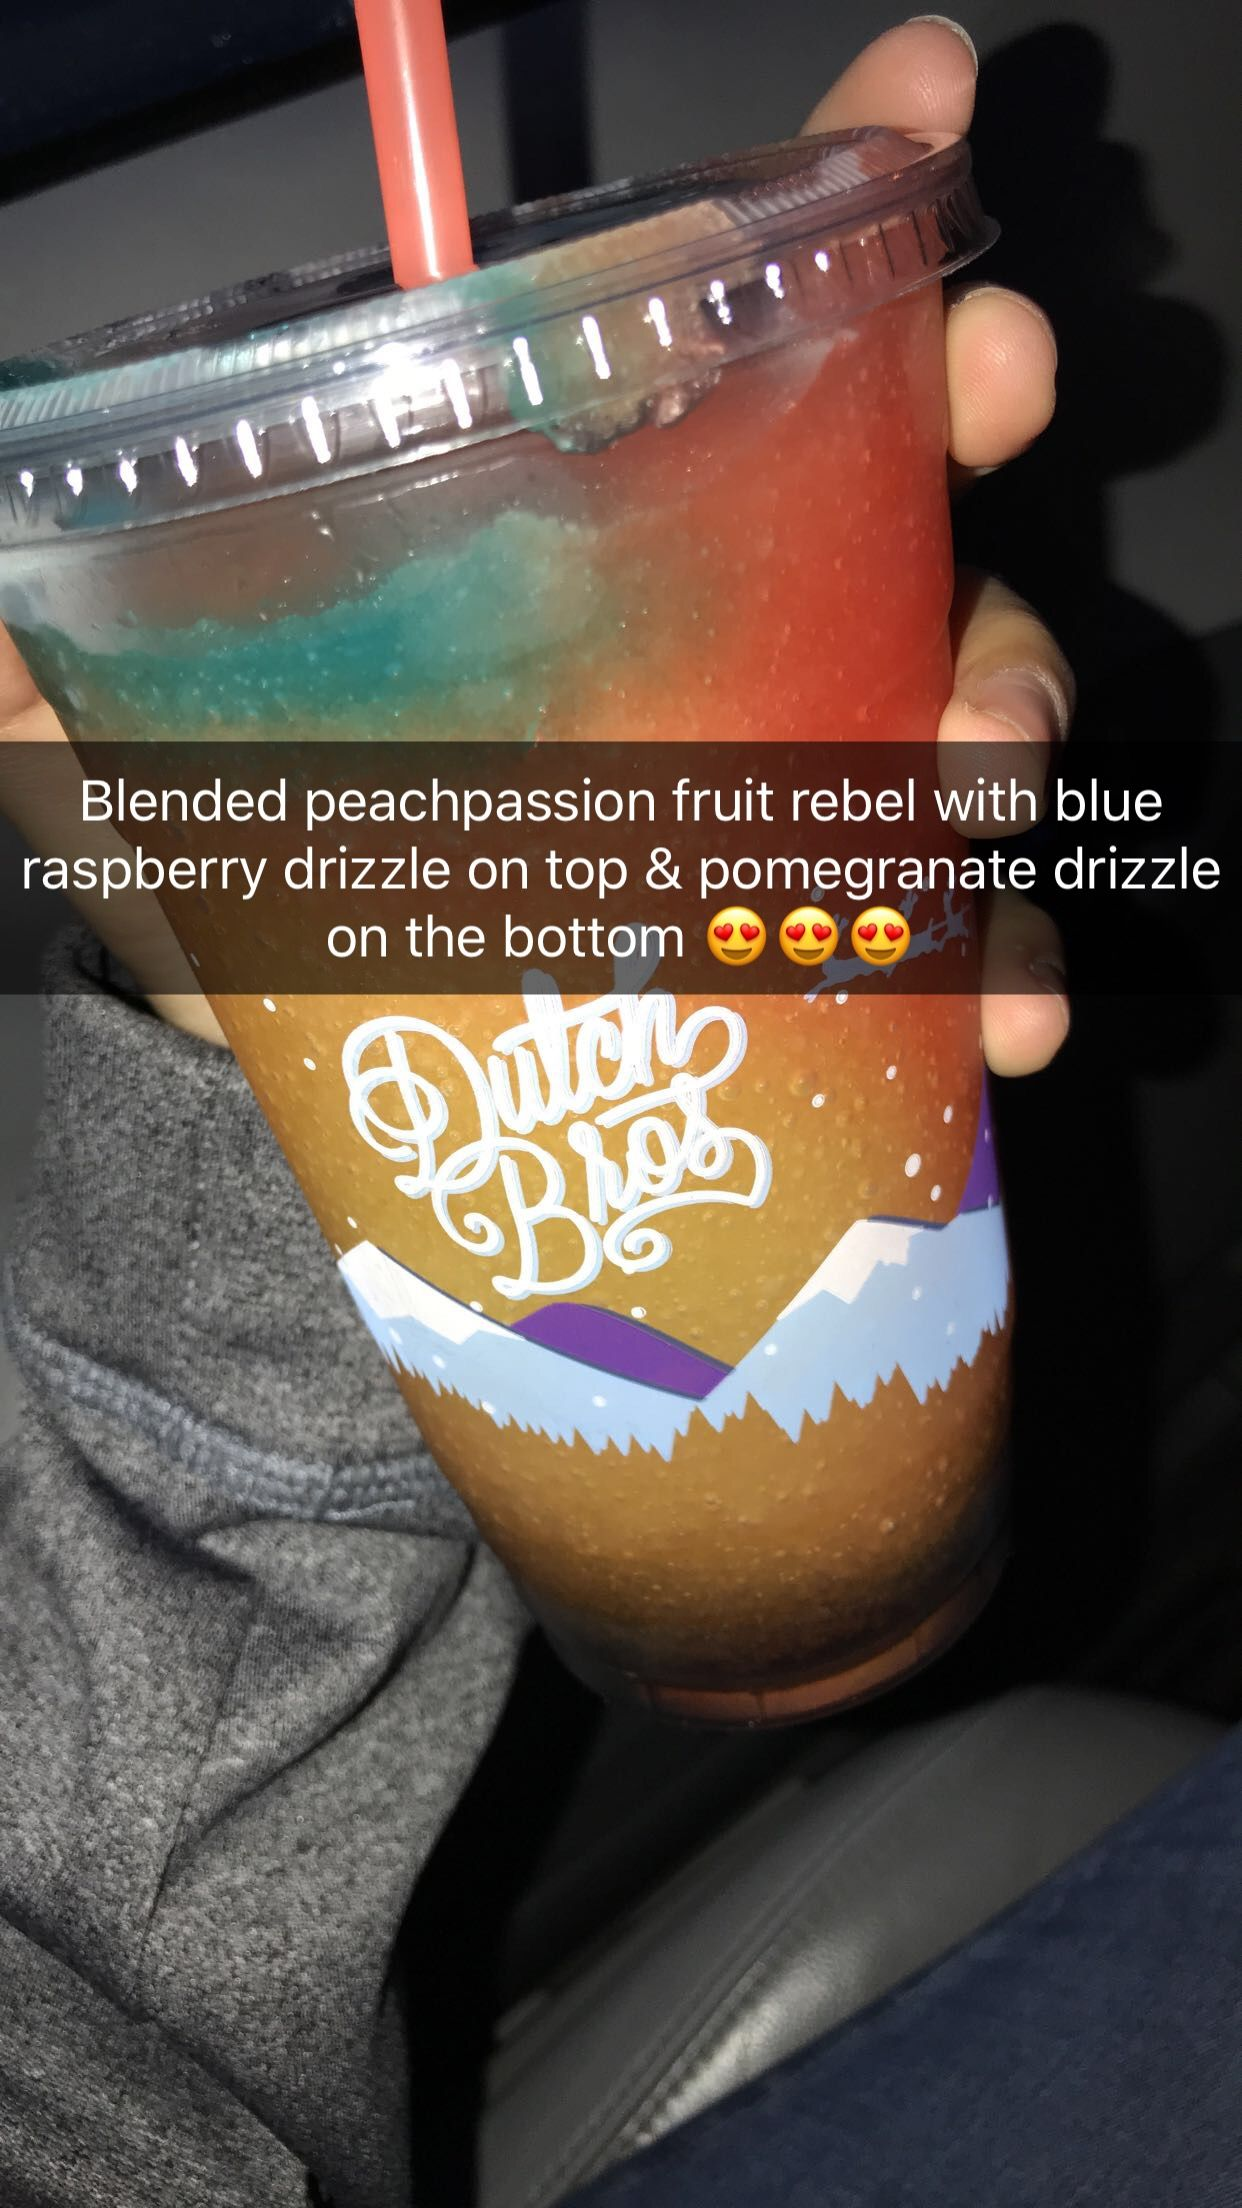 Tasted better than I expected ???? #dutchbros